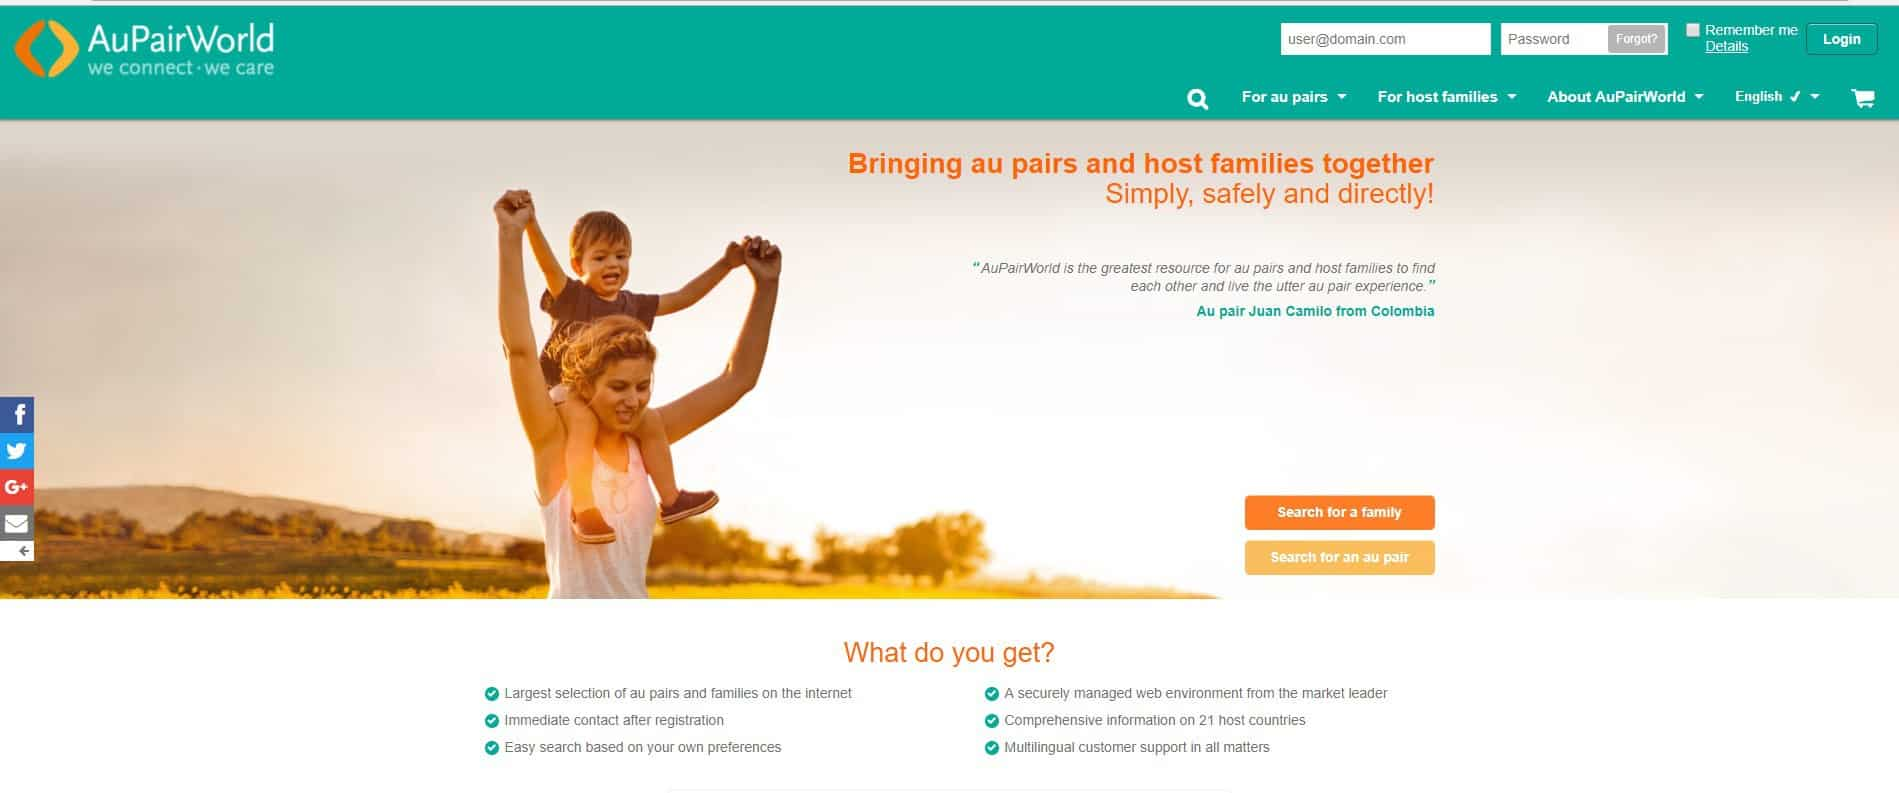 Want to know how to become an au pair in Spain? Use Au Pair World to find your au pair host family.